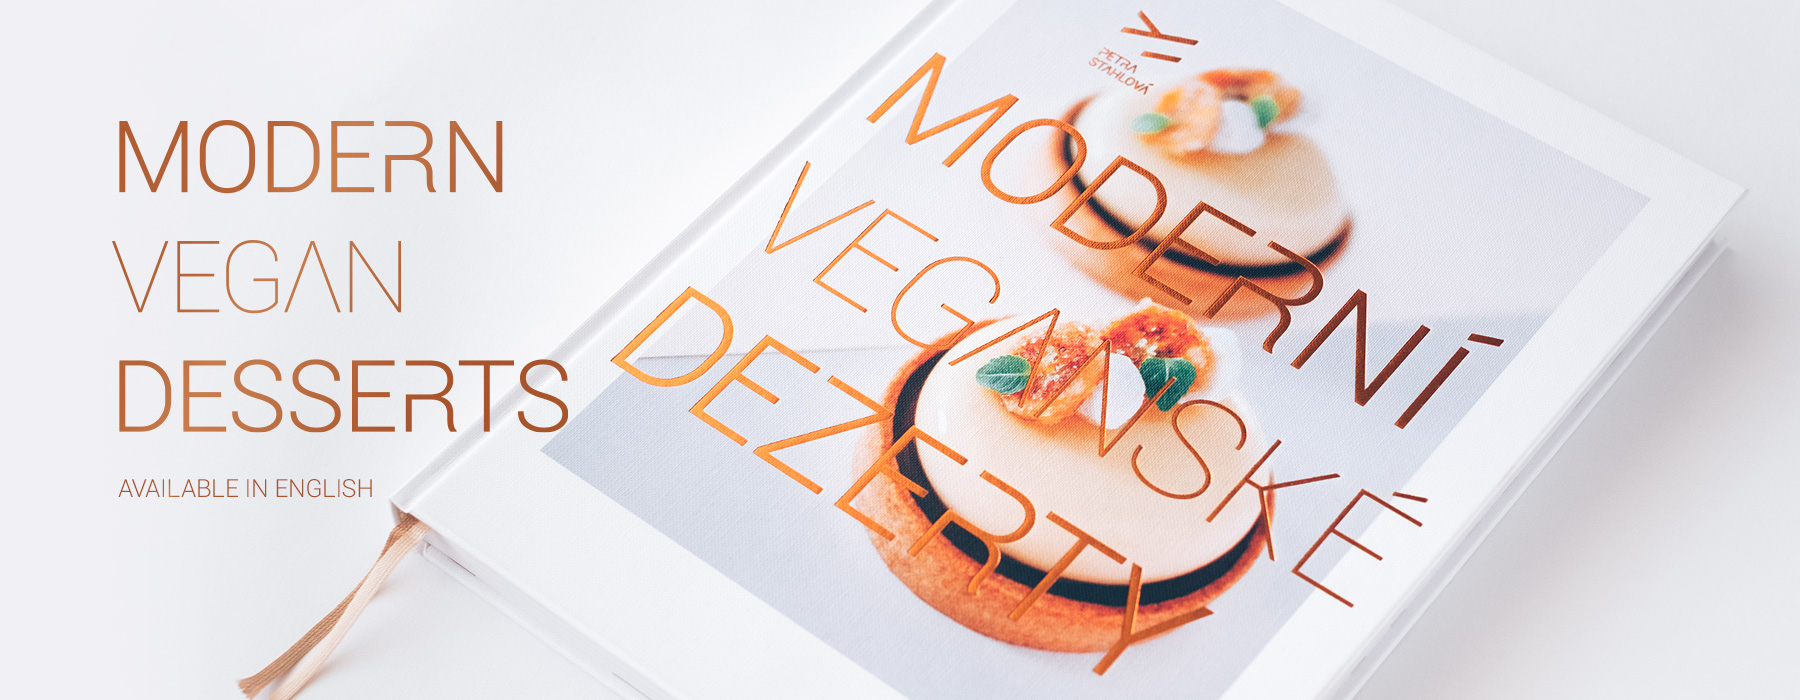 Modern Vegan Desserts - Available in English - April 2019